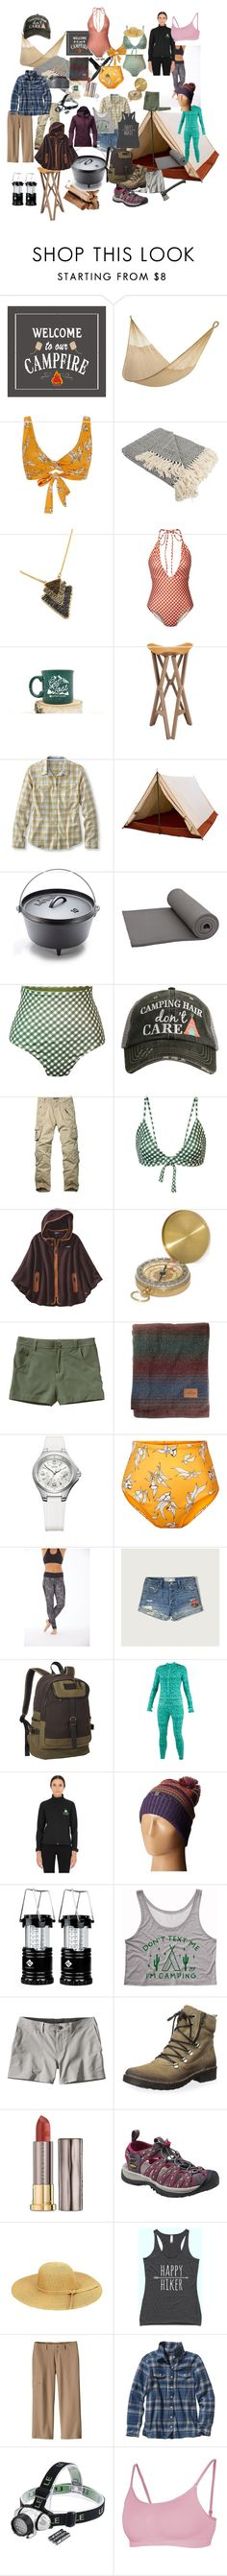 """Let's camp"" by greenrain ❤ liked on Polyvore featuring Yellow Leaf Hammocks, Camp Cove, L.L.Bean, ALPS Mountaineering, Katydid Collection, Patagonia, GSI Outdoors, Pendleton, Swiss Army and Electric Yoga"